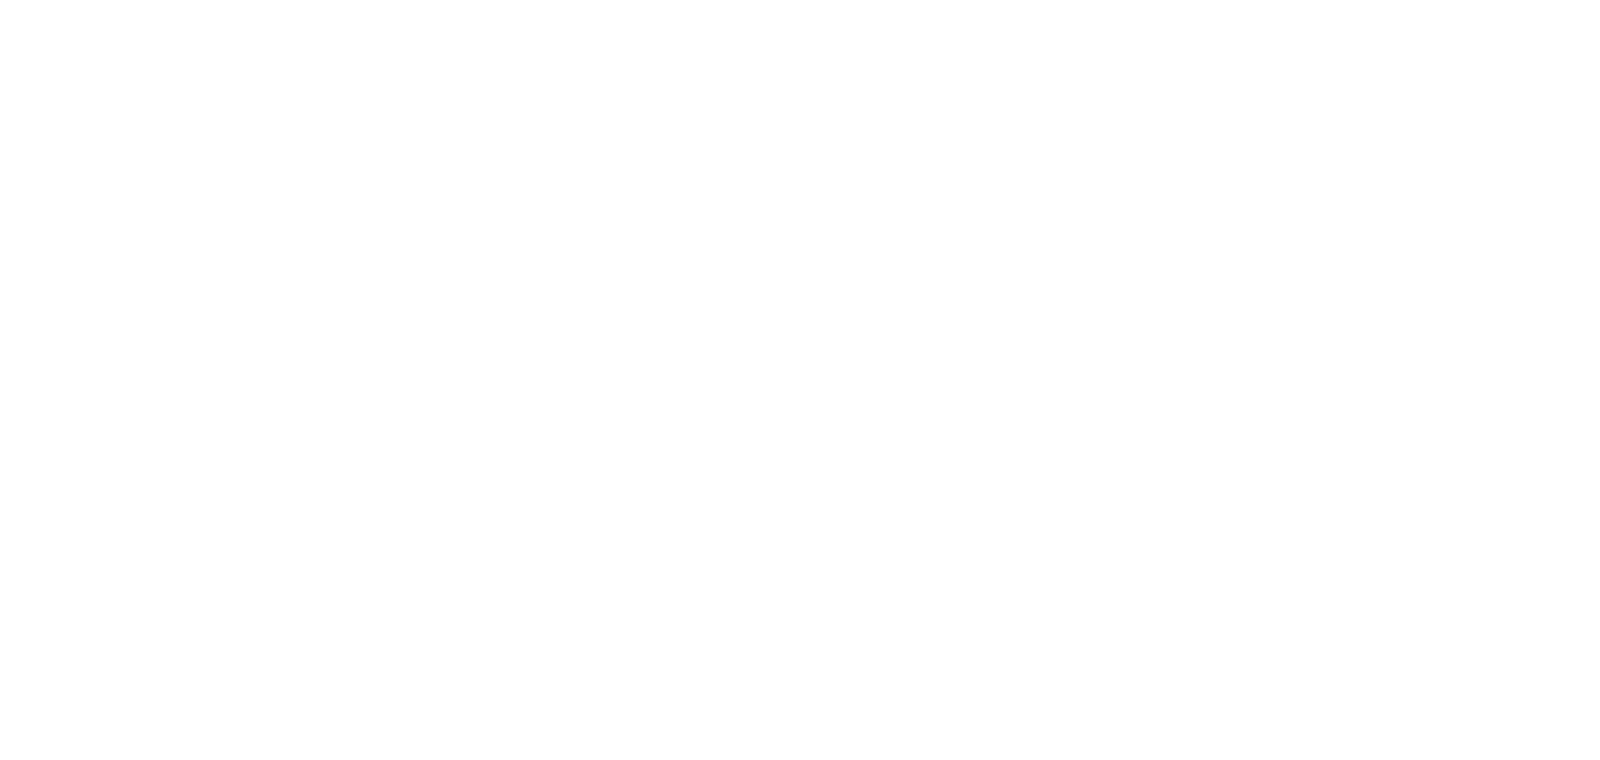 Baha Mar – Da Poke Bowl